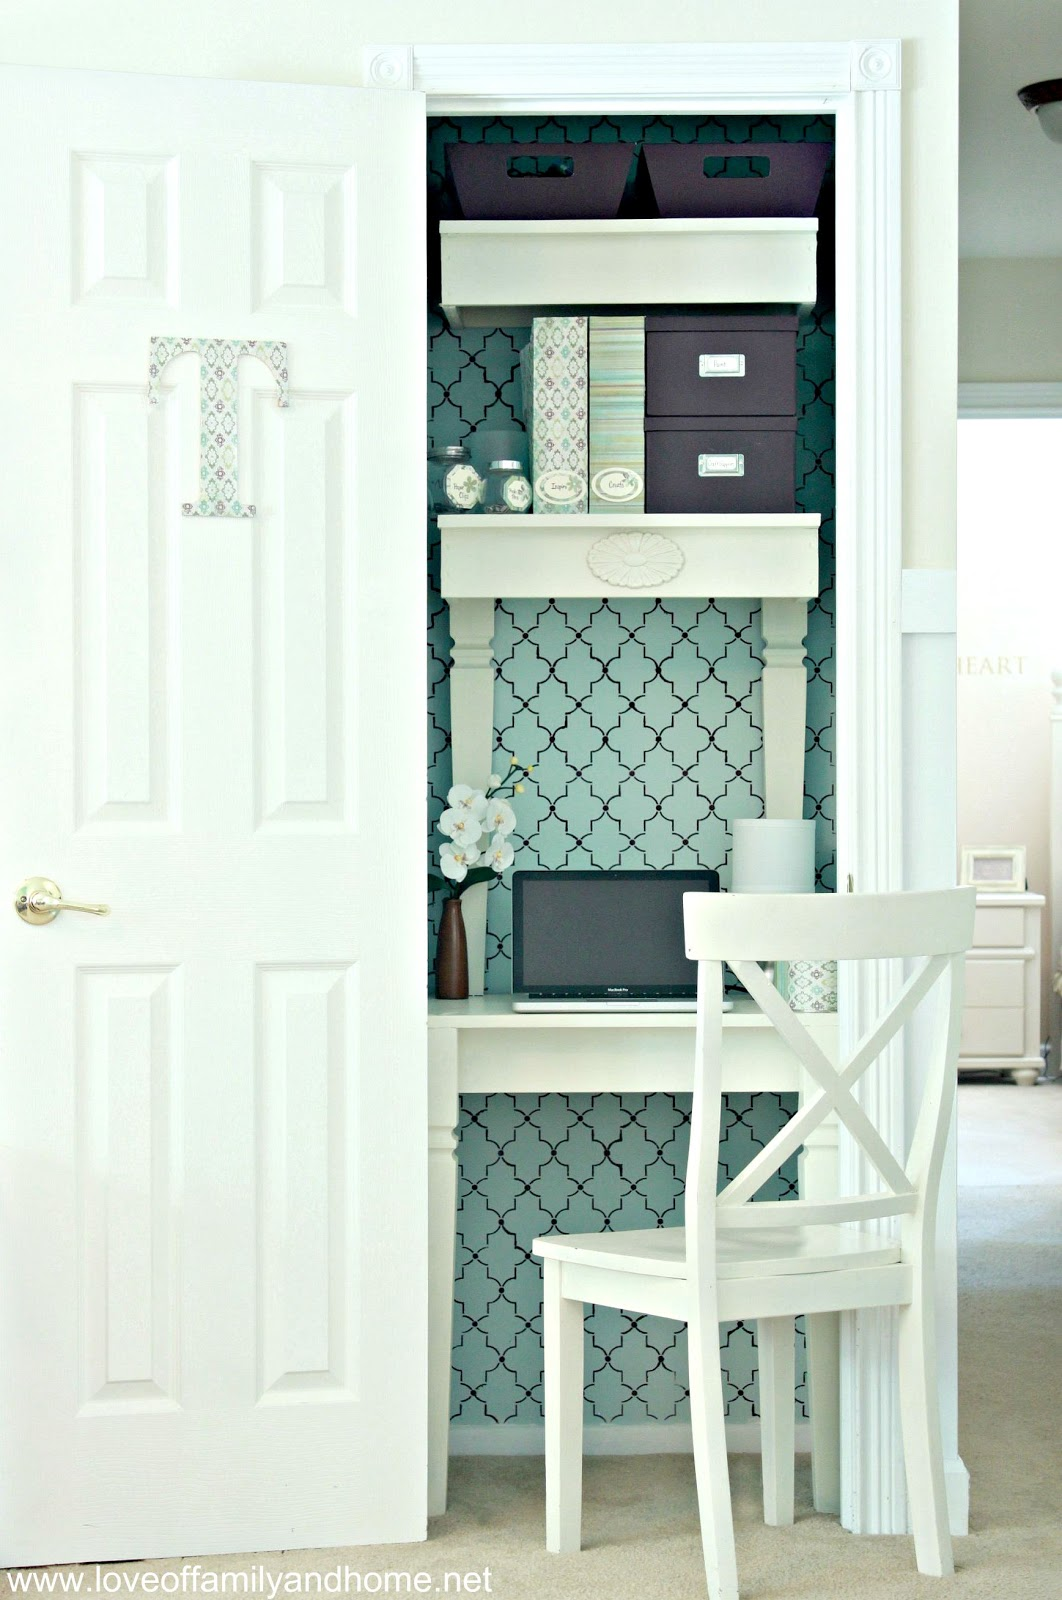 Sensational My Closet Turned Home Office Reveal Love Of Family Home Largest Home Design Picture Inspirations Pitcheantrous